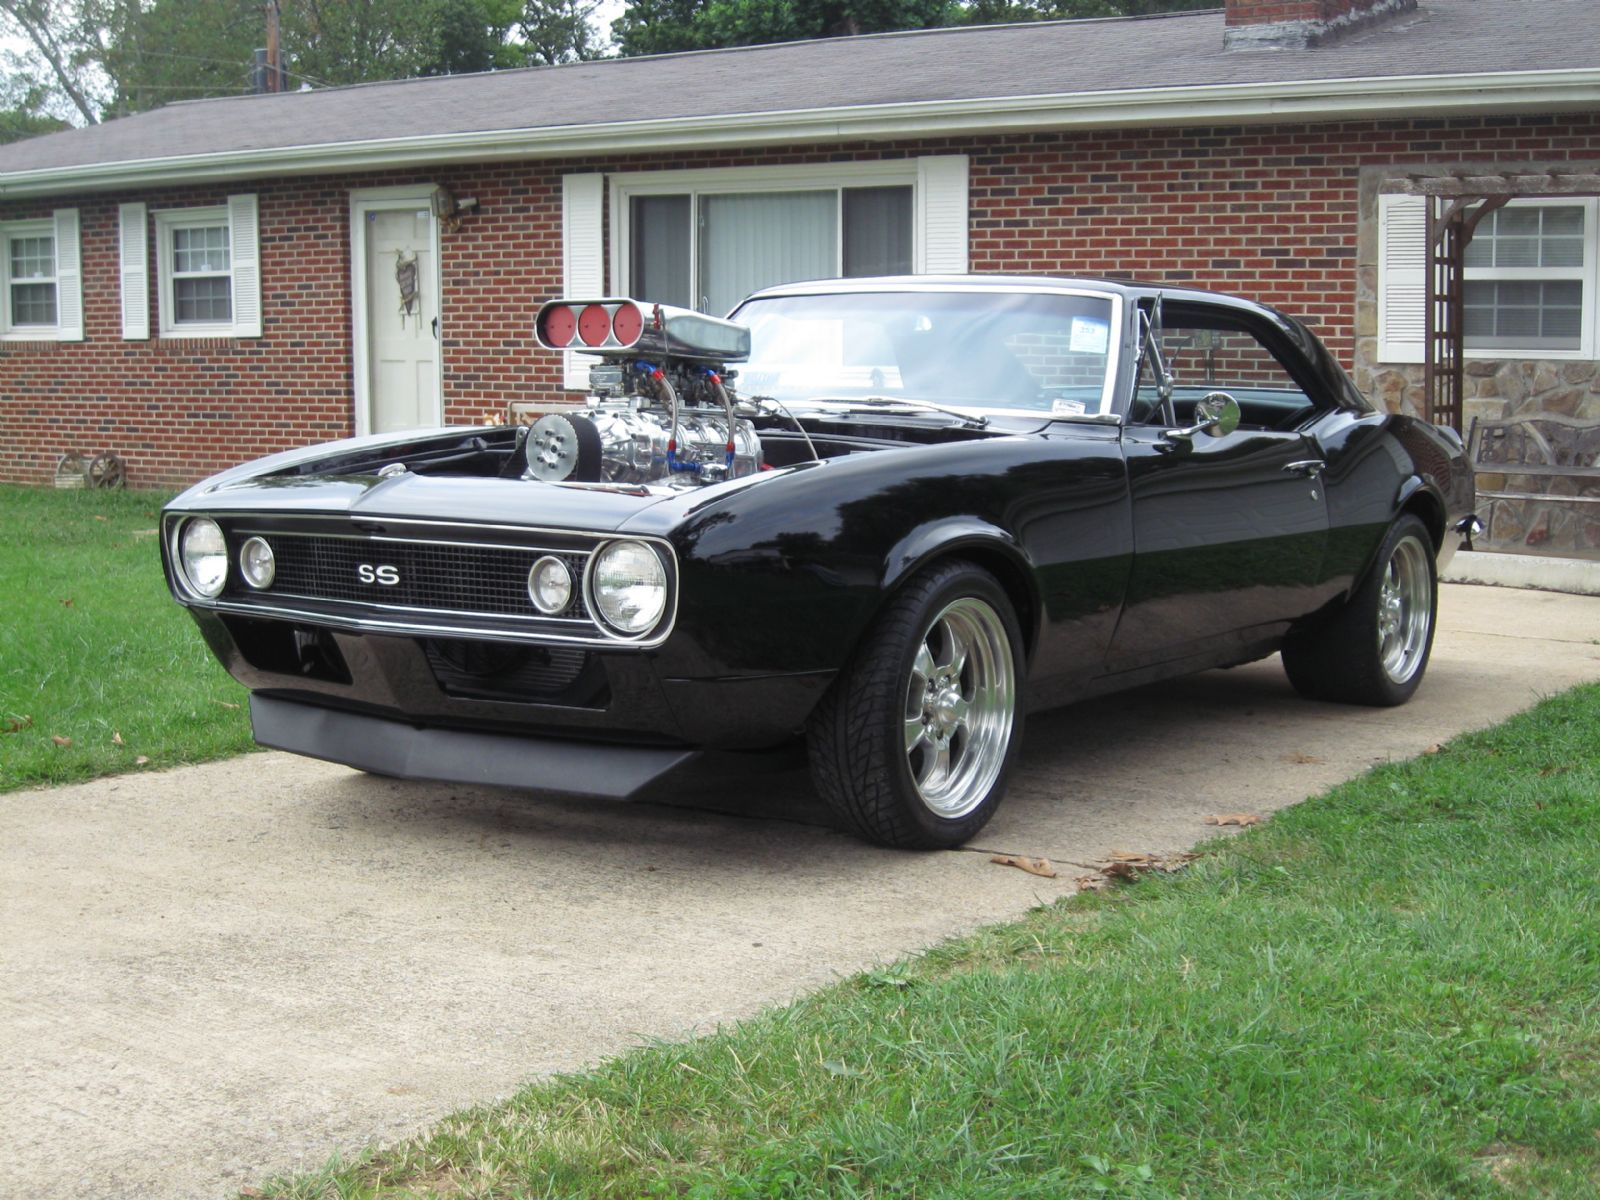 1967 chevrolet black beauty camaro blown 496 ss camaro for sale kingsport tennessee. Black Bedroom Furniture Sets. Home Design Ideas